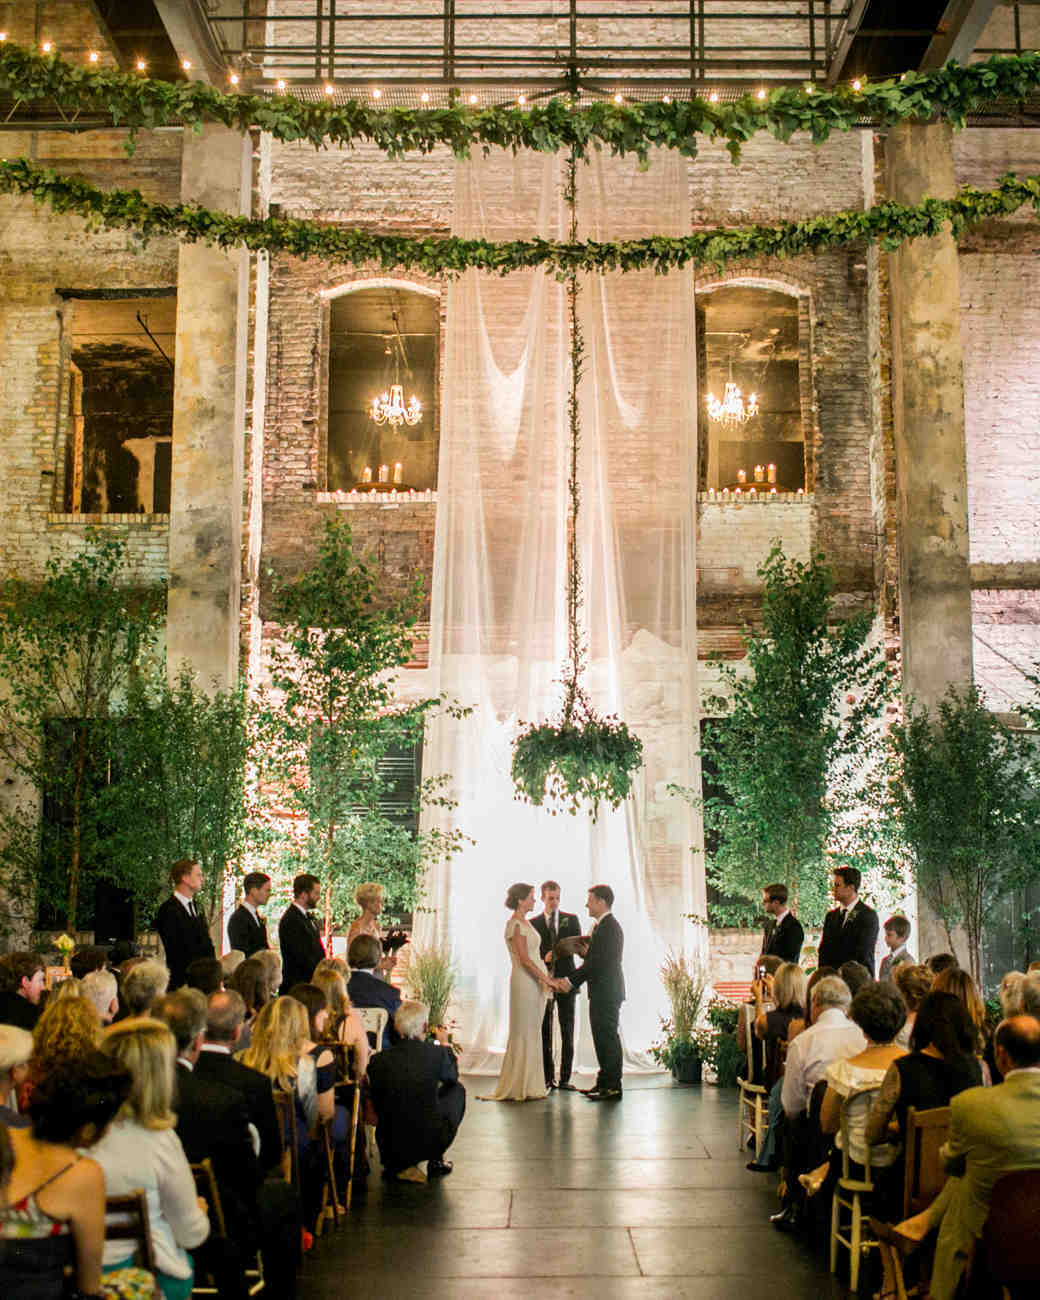 Beautiful Outdoor Wedding Ideas: Restored Warehouses Where You Can Tie The Knot